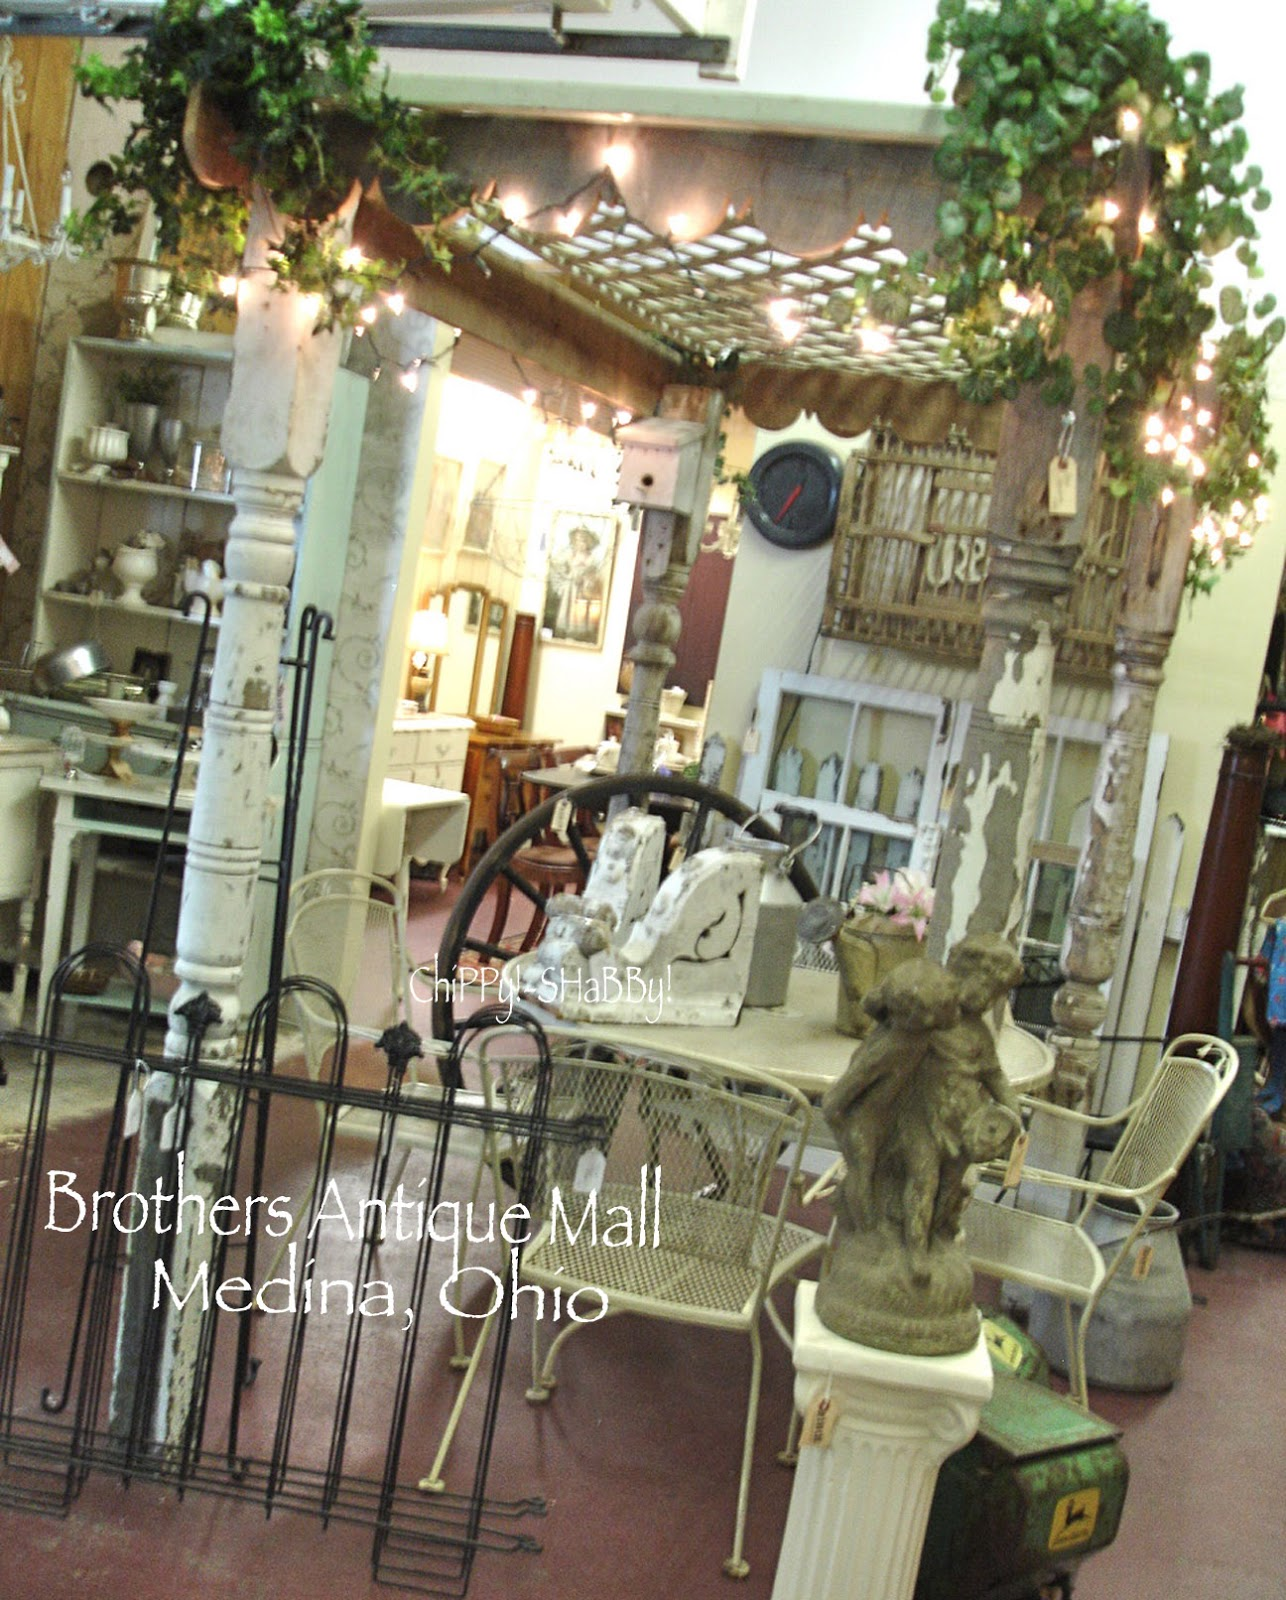 chippy shabby shabby shopping o h i o brother 39 s antique mall in medina. Black Bedroom Furniture Sets. Home Design Ideas